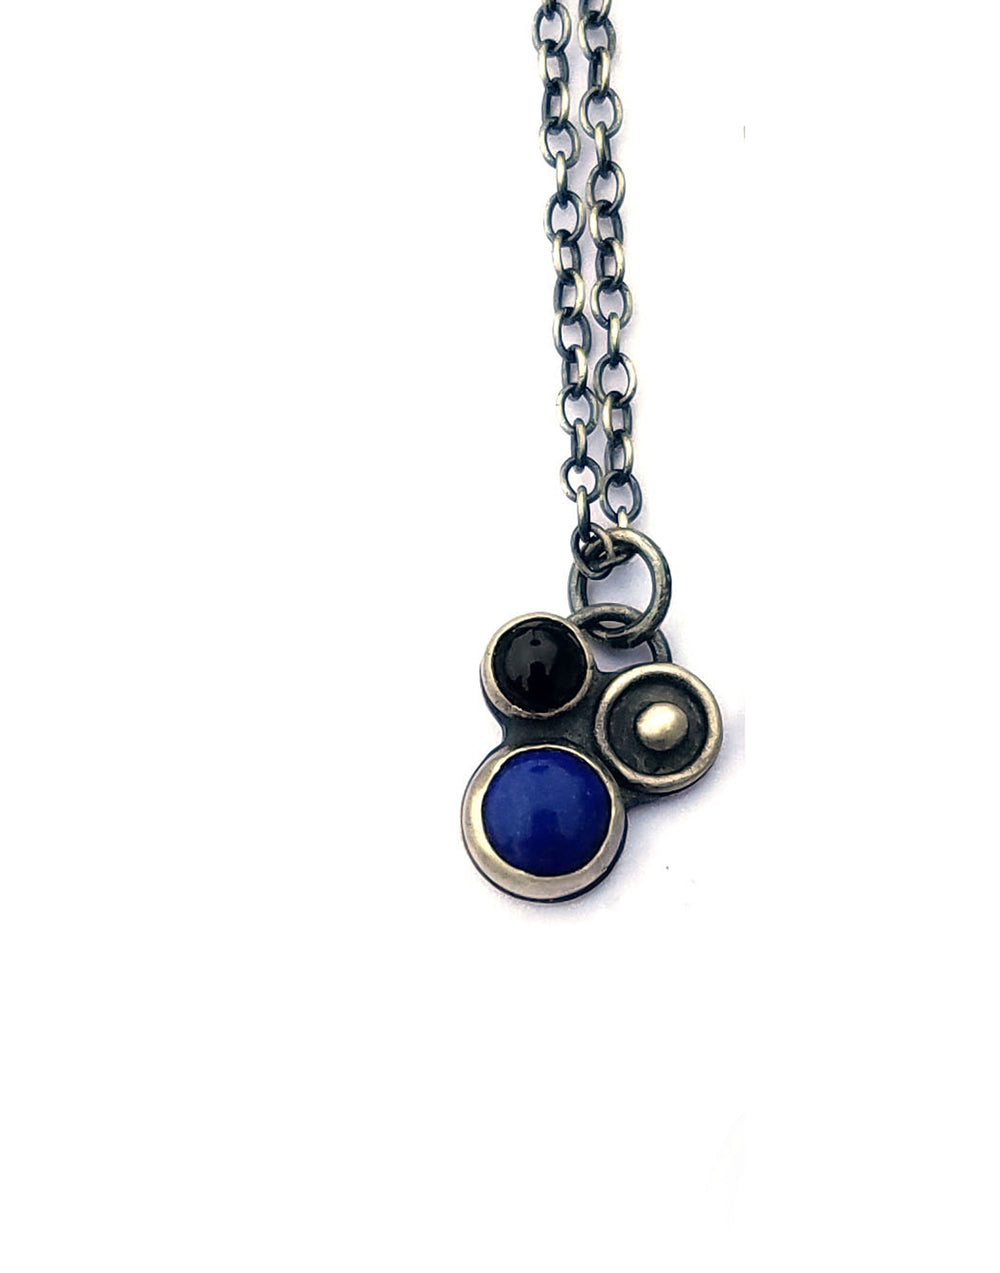 Erin Austin necklace, Orbital (tiny)